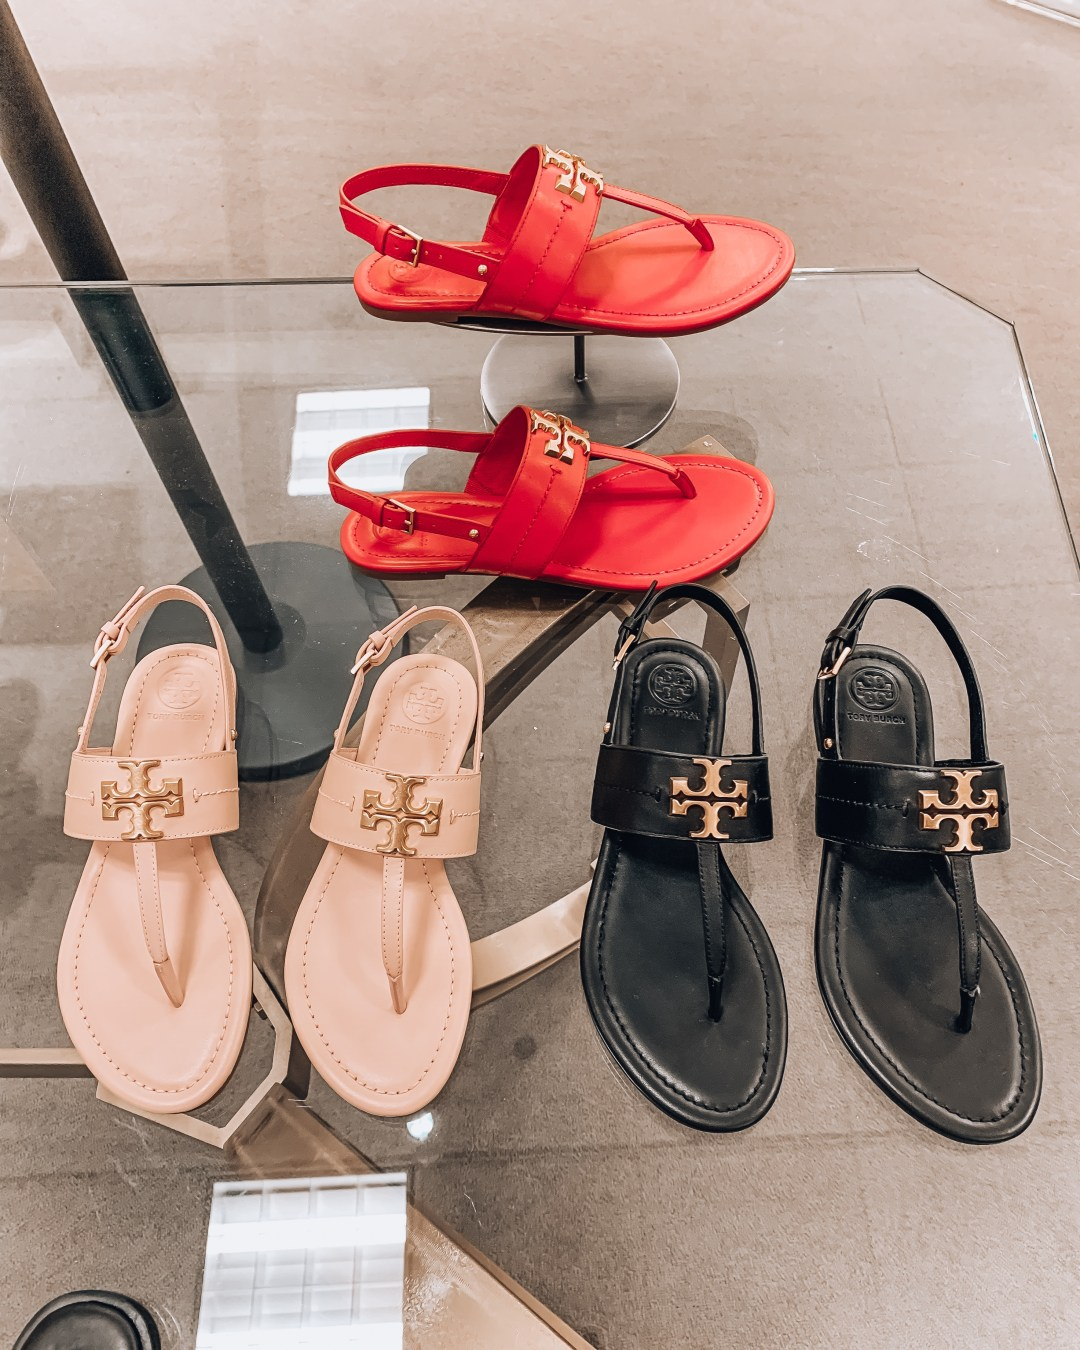 Nordstrom Anniversary Sale Tory Burch sandals